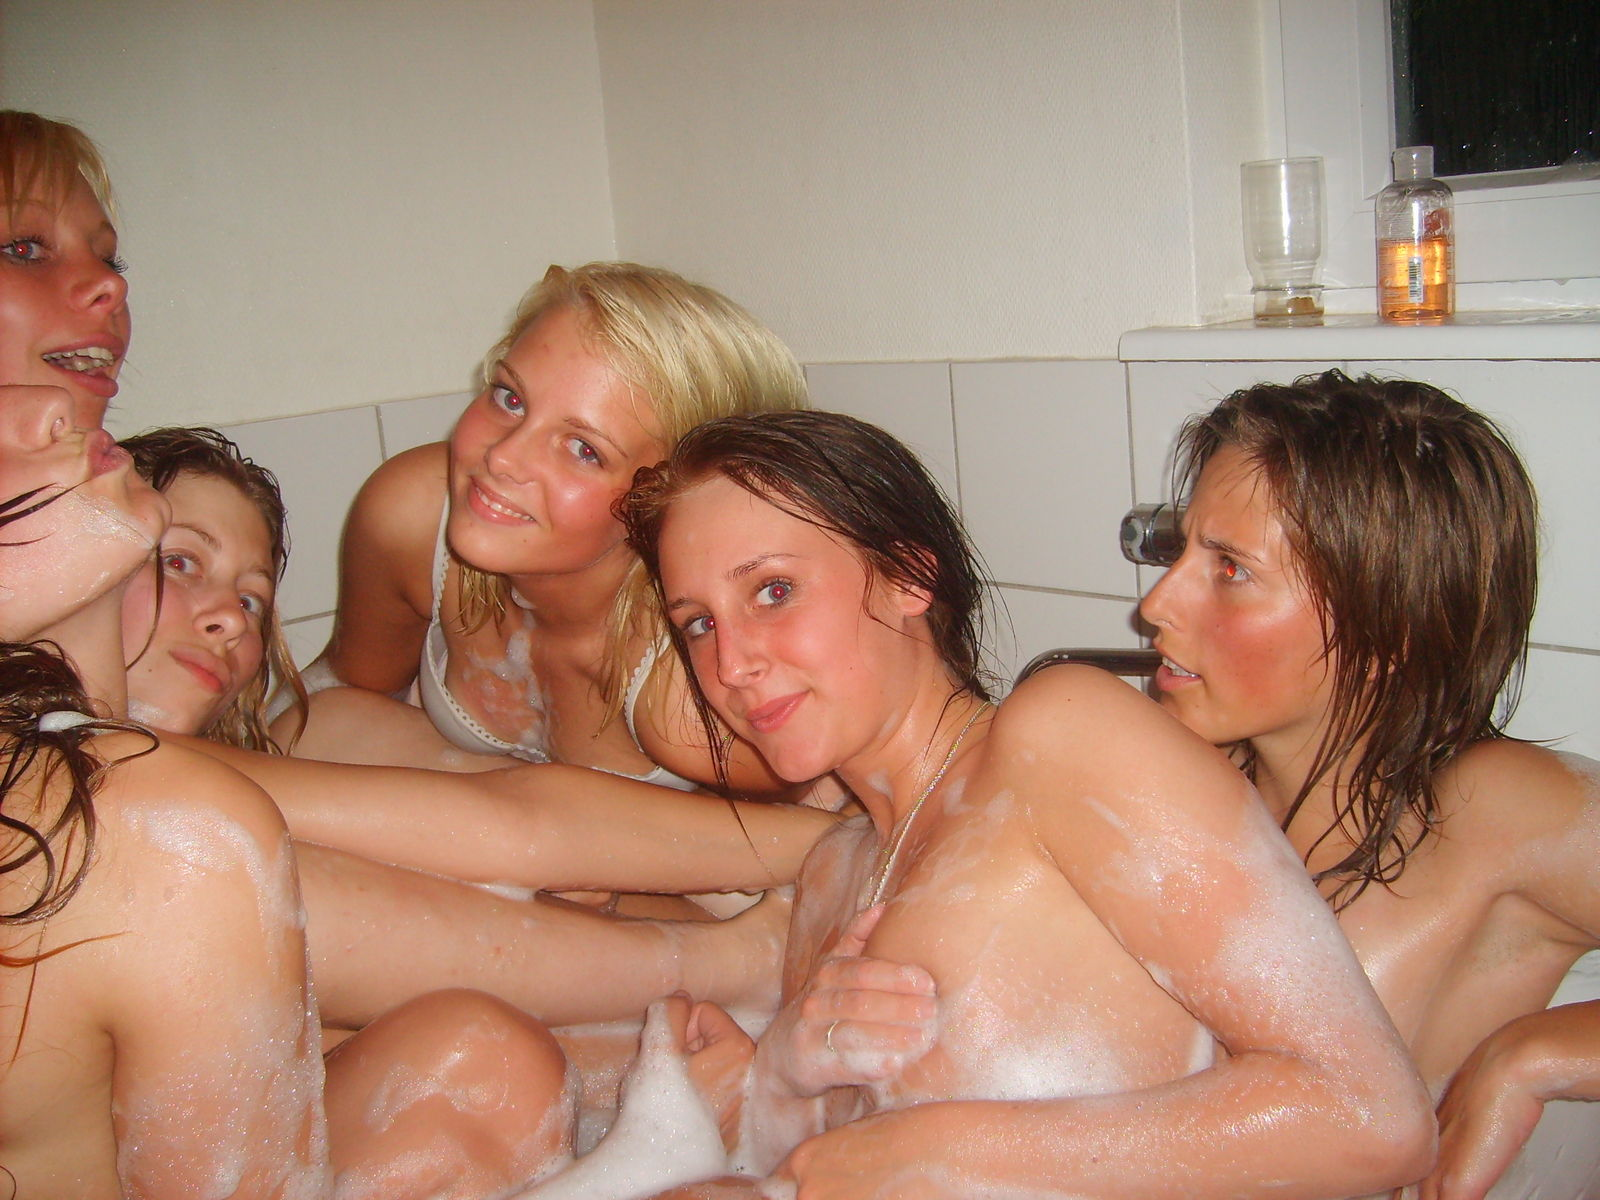 Lesbians Pose In The Bath For Sexy Photo Shoot